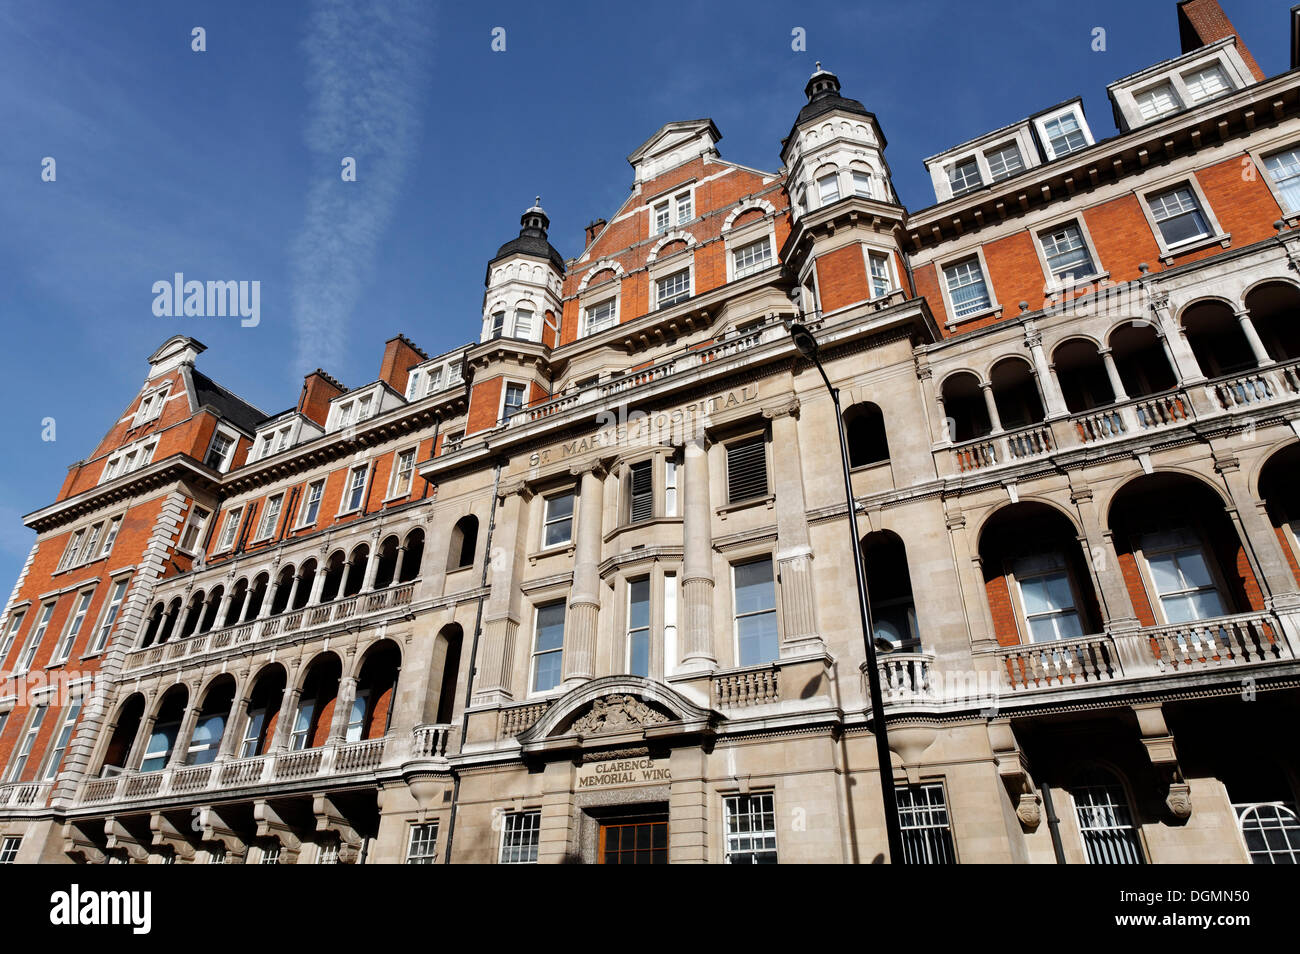 St. Mary's Hospital, Alexander Fleming Museum, Paddington, London, England, United Kingdom, Europe - Stock Image